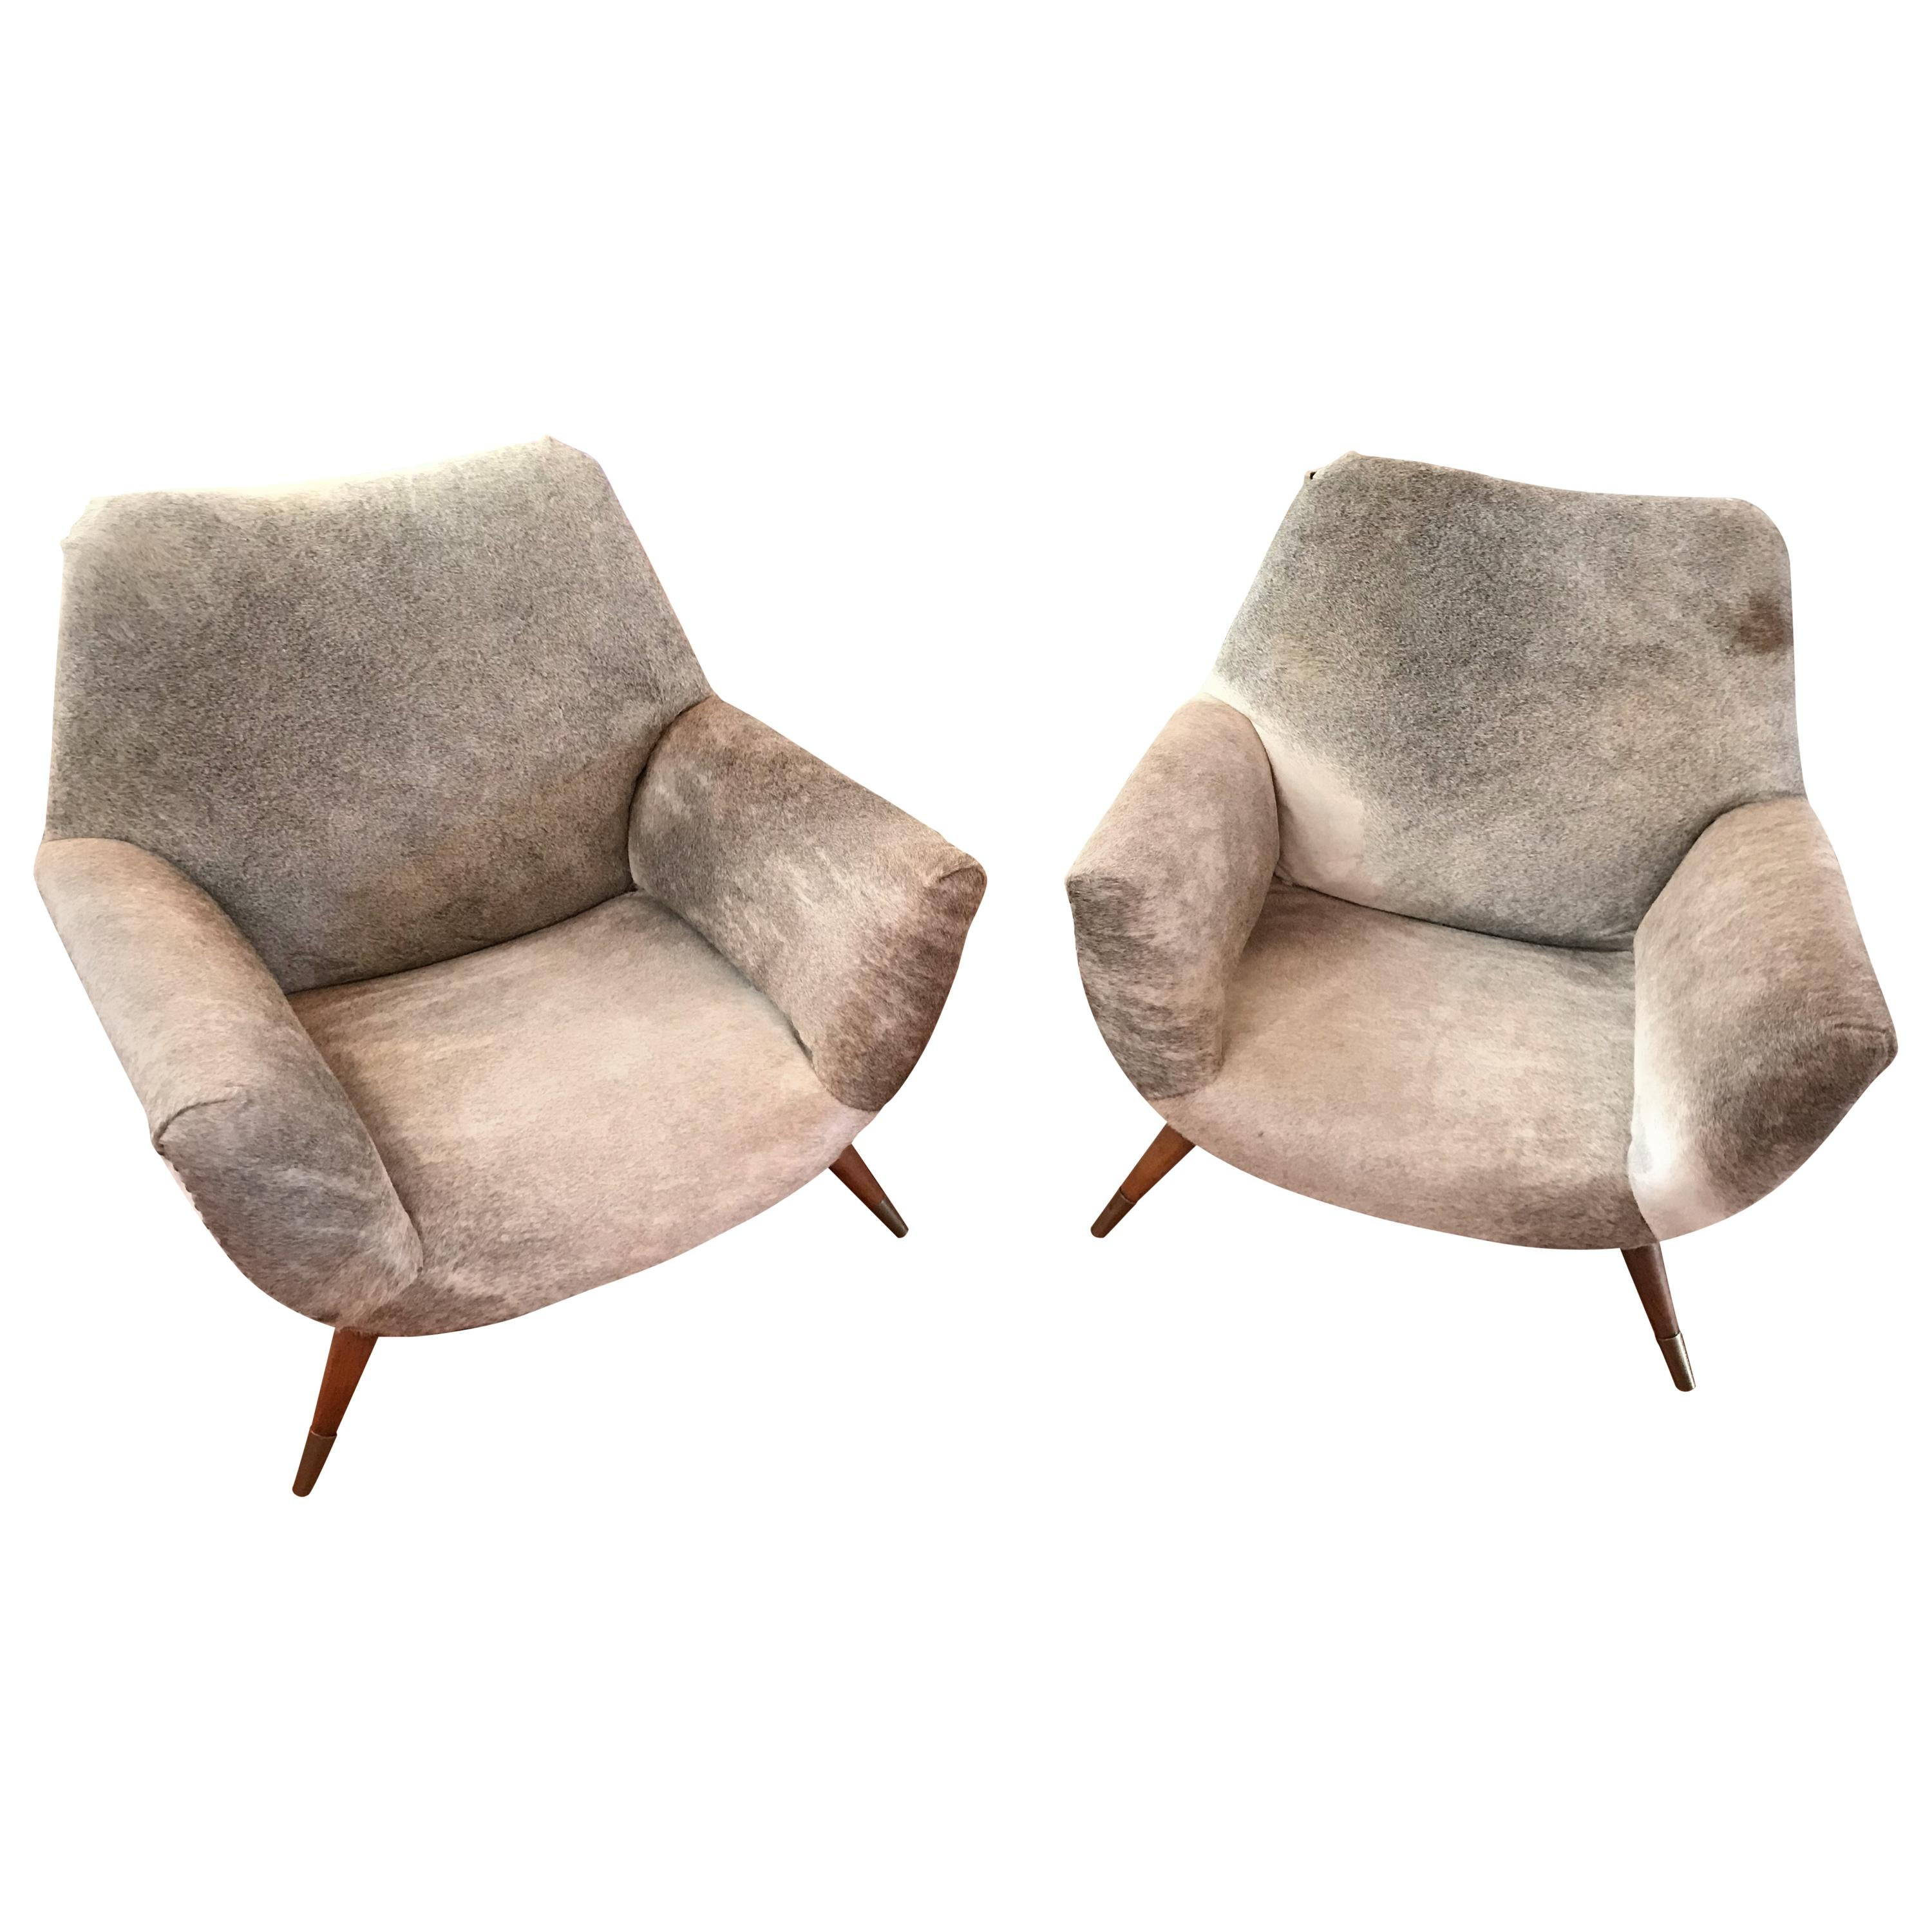 Pair Of Italian Mid Century Modern Club Chairs Covered In Cowhide